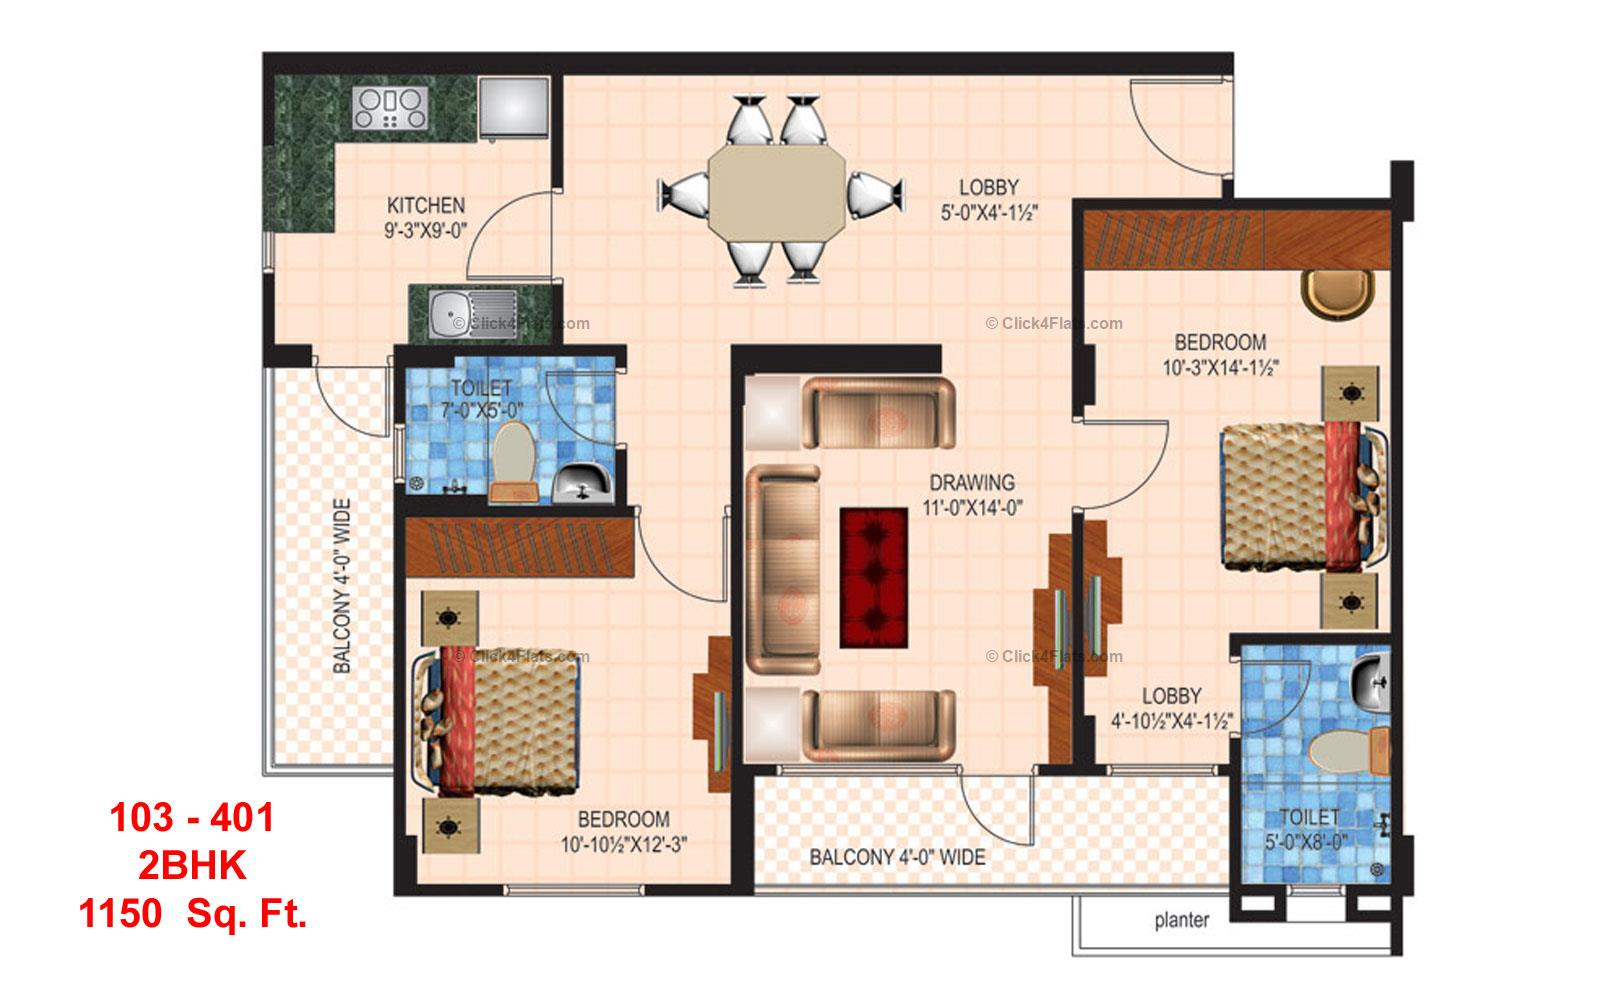 Anukampa Residency 2 BHK 1150 square feet